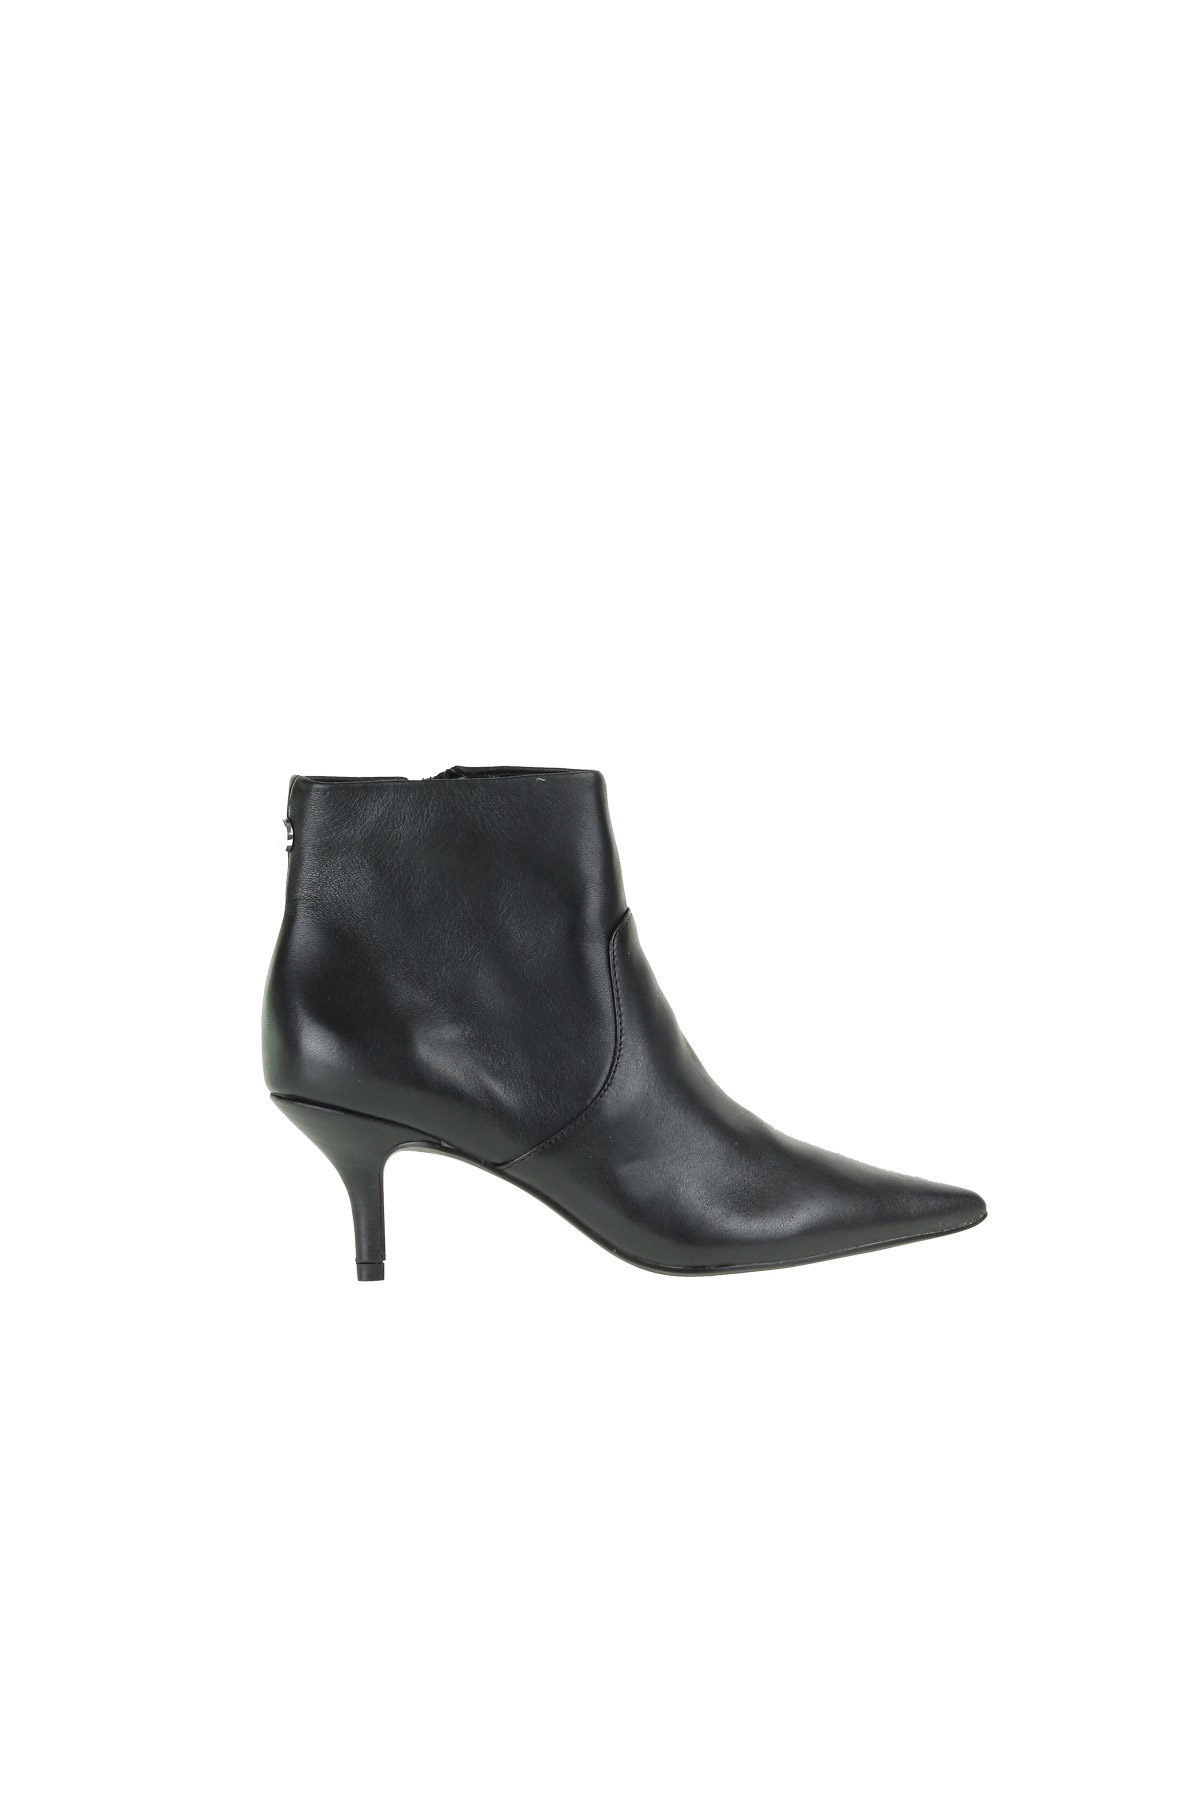 d0b57043ad313 LEATHER ANKLE BOOTS STEVE MADDEN | Ankle Boots | SMSROMENERO